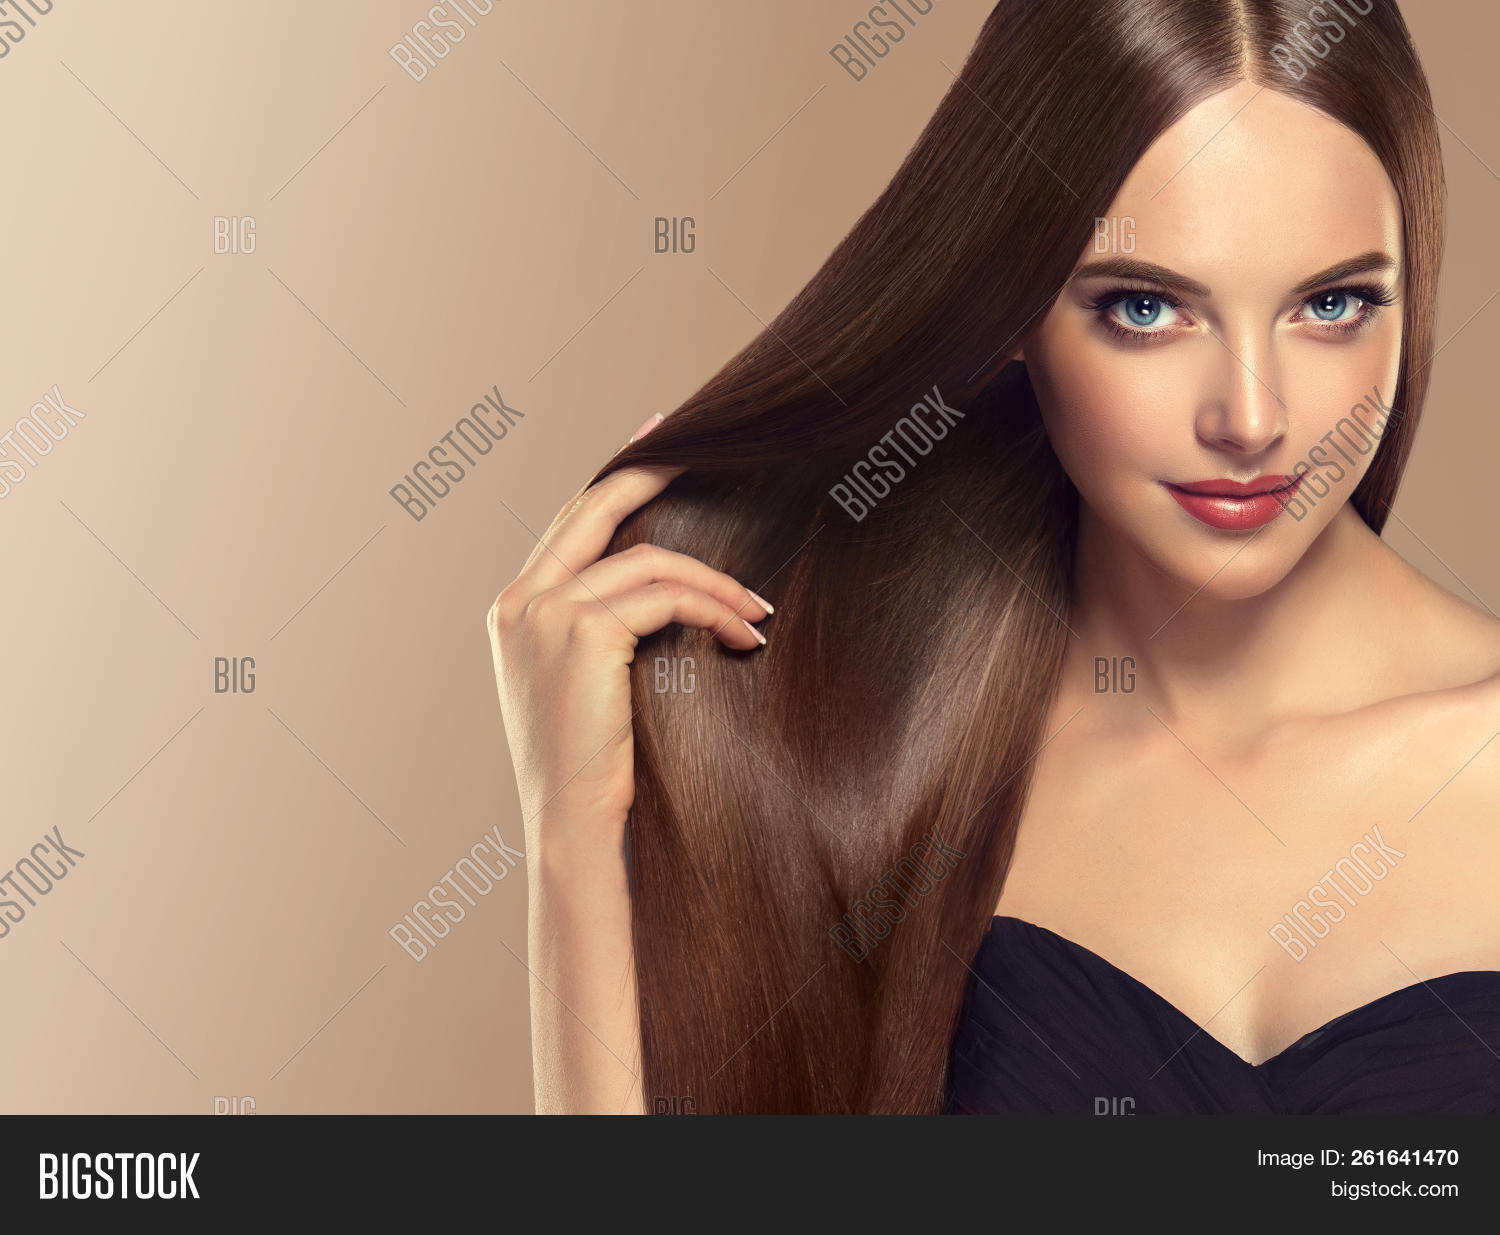 barber,beautiful,beauty,bright,brown,brunette,care,clean,color,coloration,colorful,cosmetics,cute,dandruff,elegance,eyes,face,fashion,female,girl,glamour,glance,hair,haircut,hairdresser,hairstyle,health,healthy,keratin,lady,long,look,make,make-up,makeup,model,perming,salon,shampoo,shine,skin,smile,smooth,straight,straightening,style,thick,wellness,wig,woman